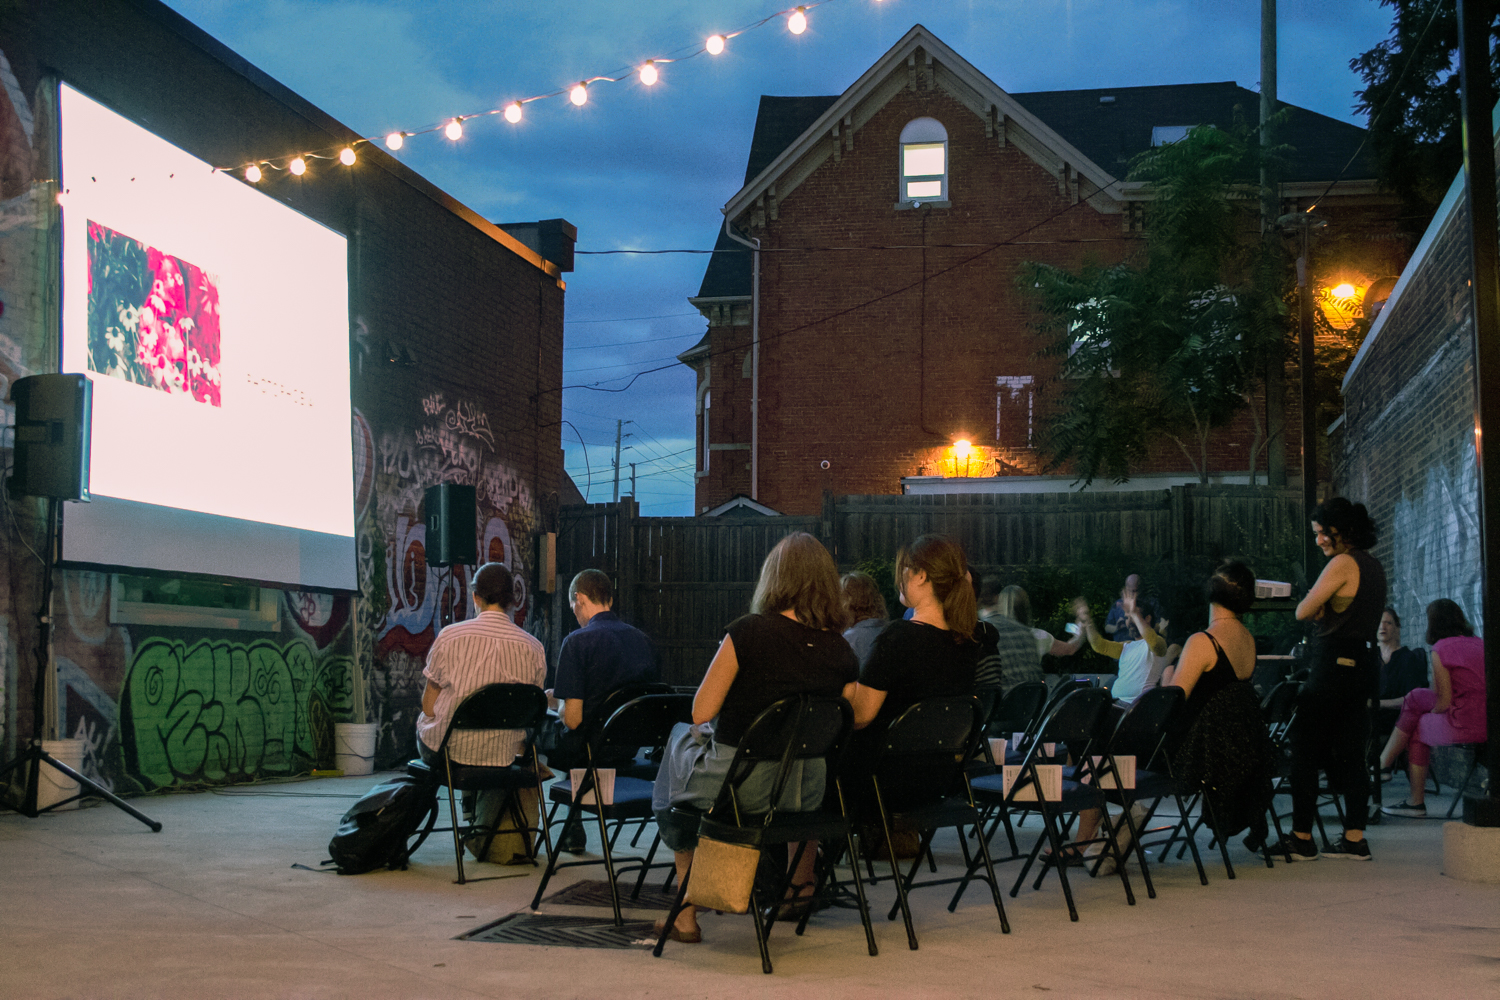 A film is being projected on a screen in the Inc.'s courtyard. The audience is seated in several rows of fold-out chairs; a program is slipped in the side of each unoccupied chair. In the background, a red brick building called the Notre Dame House stands against a dark, overcast sky.